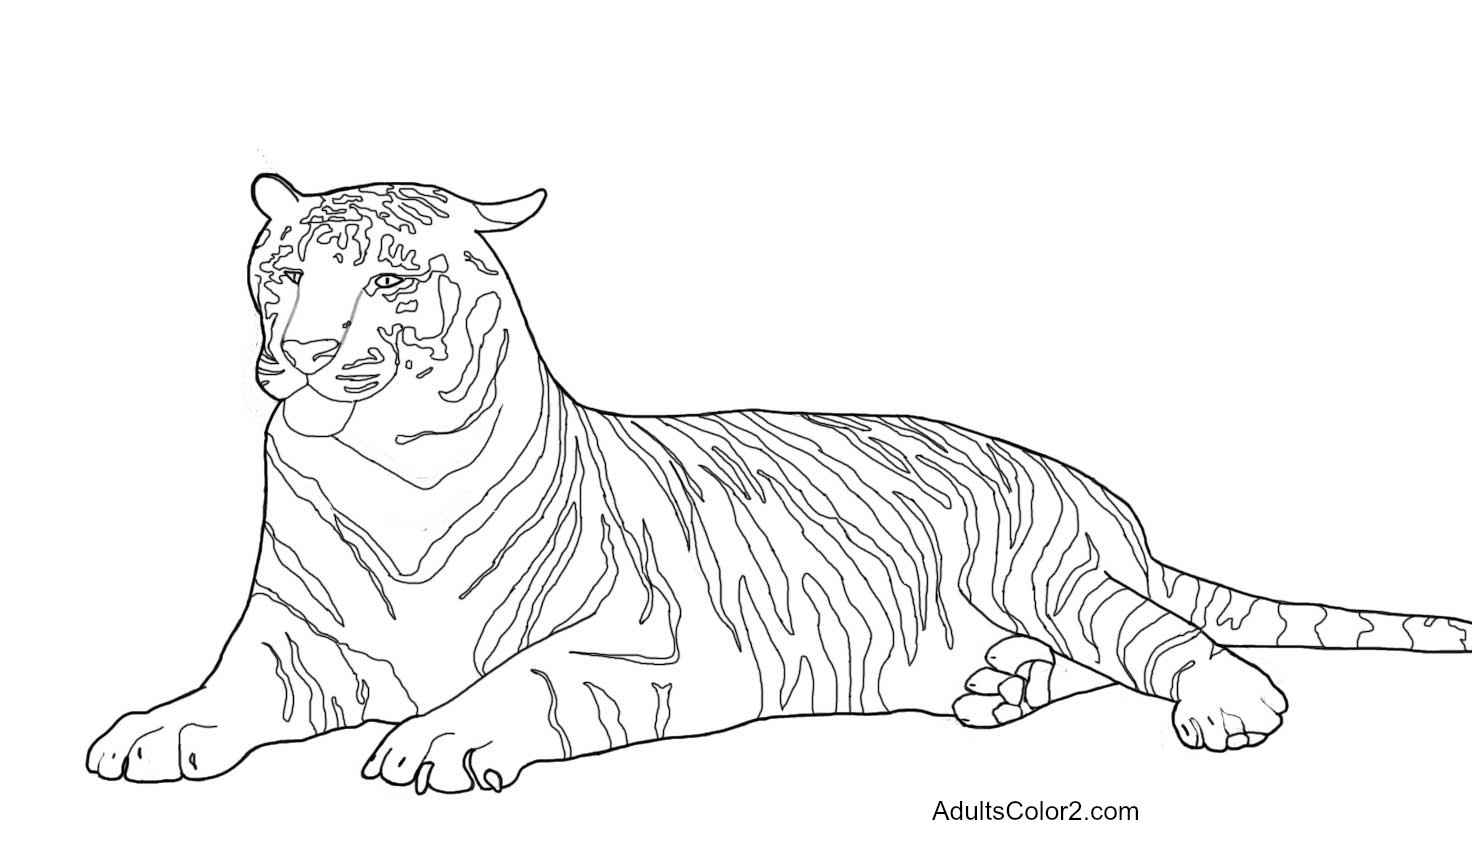 Tiger Coloring Pages Powerfulcats Sketch Coloring Page